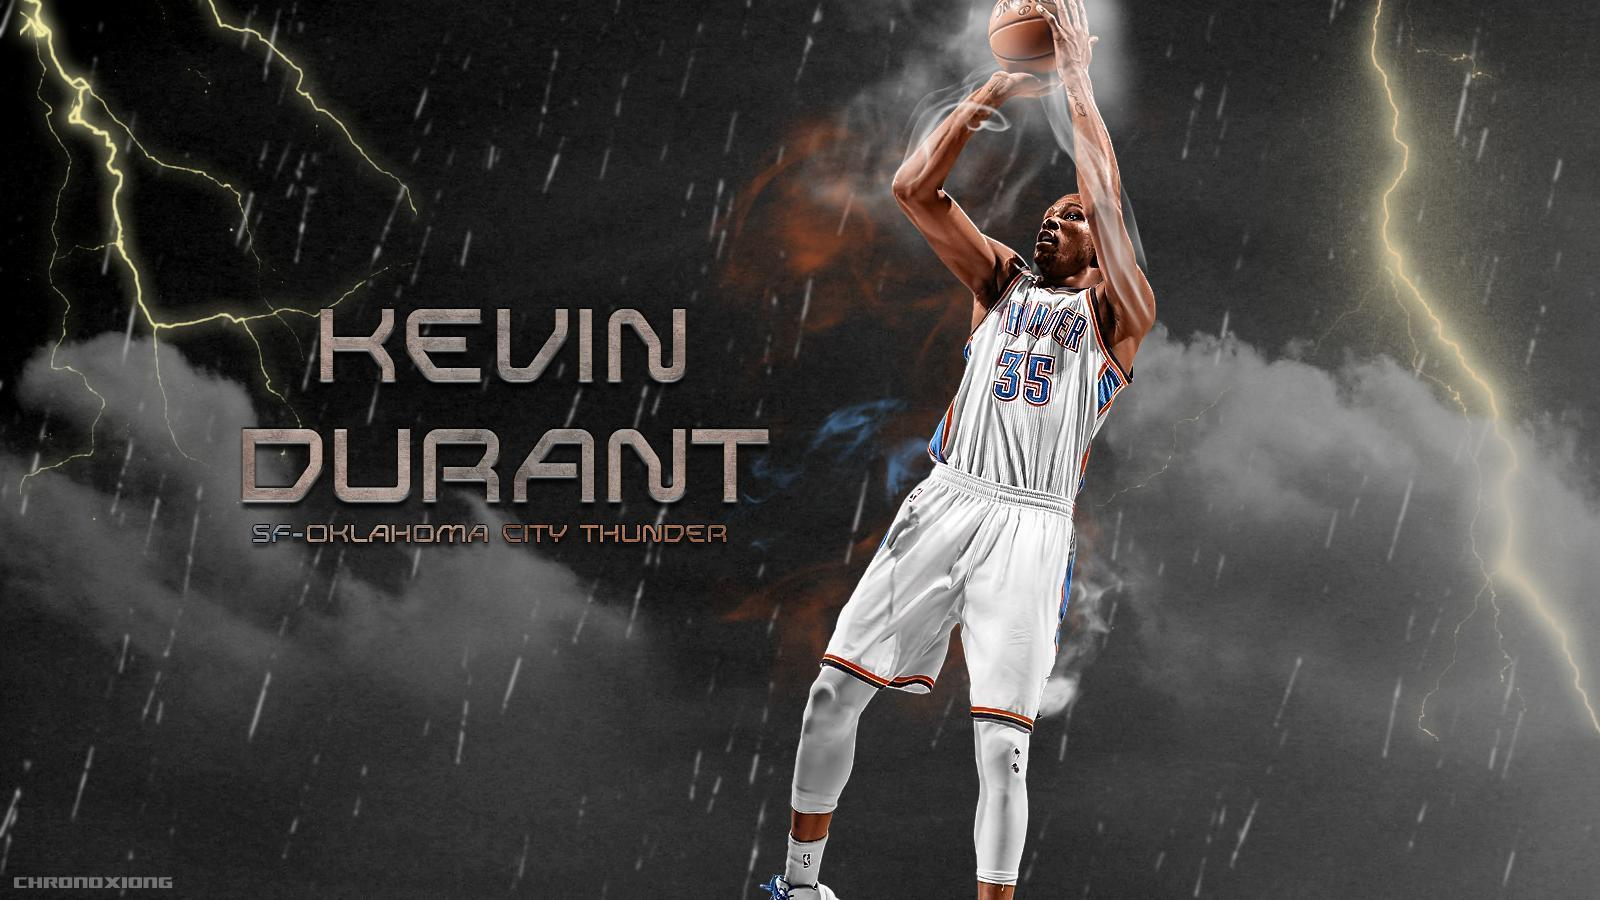 Kevin Durant Wallpapers 2015 HD 1600x900